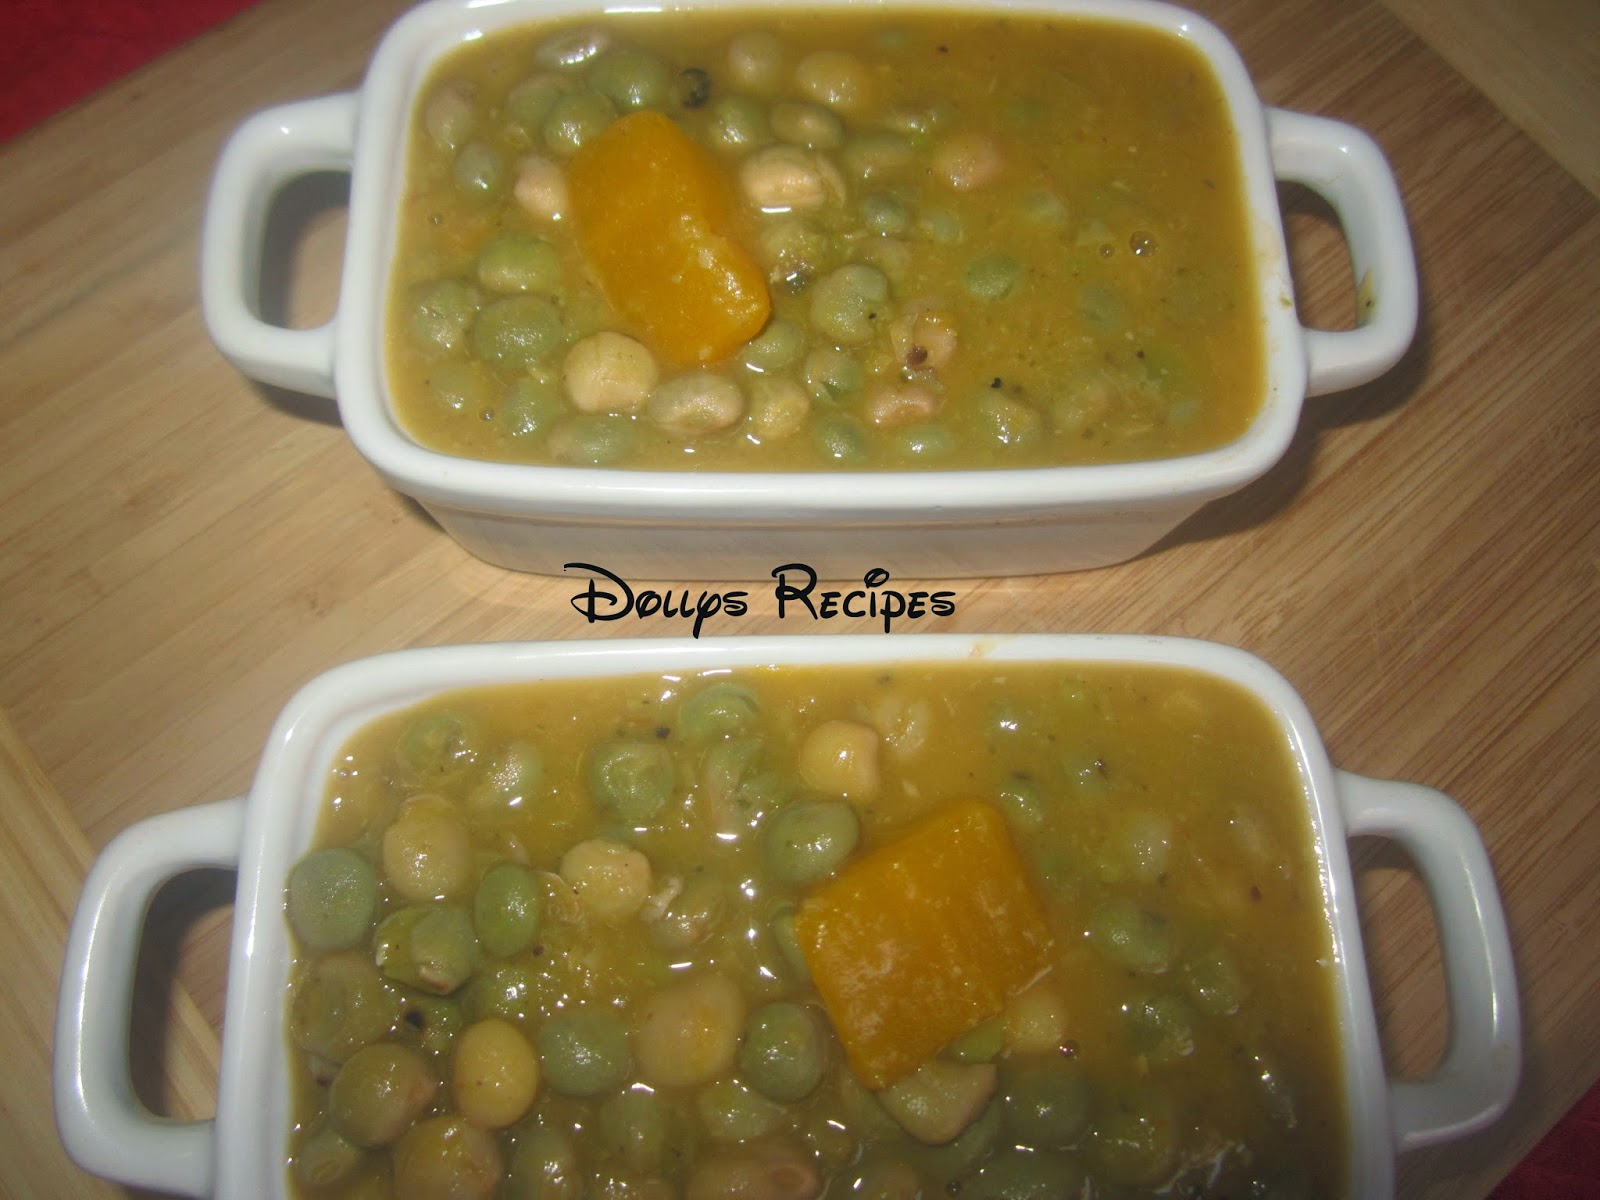 Dolly 39 s recipes n 39 more guandules guisados con coco for Chambre de guandules